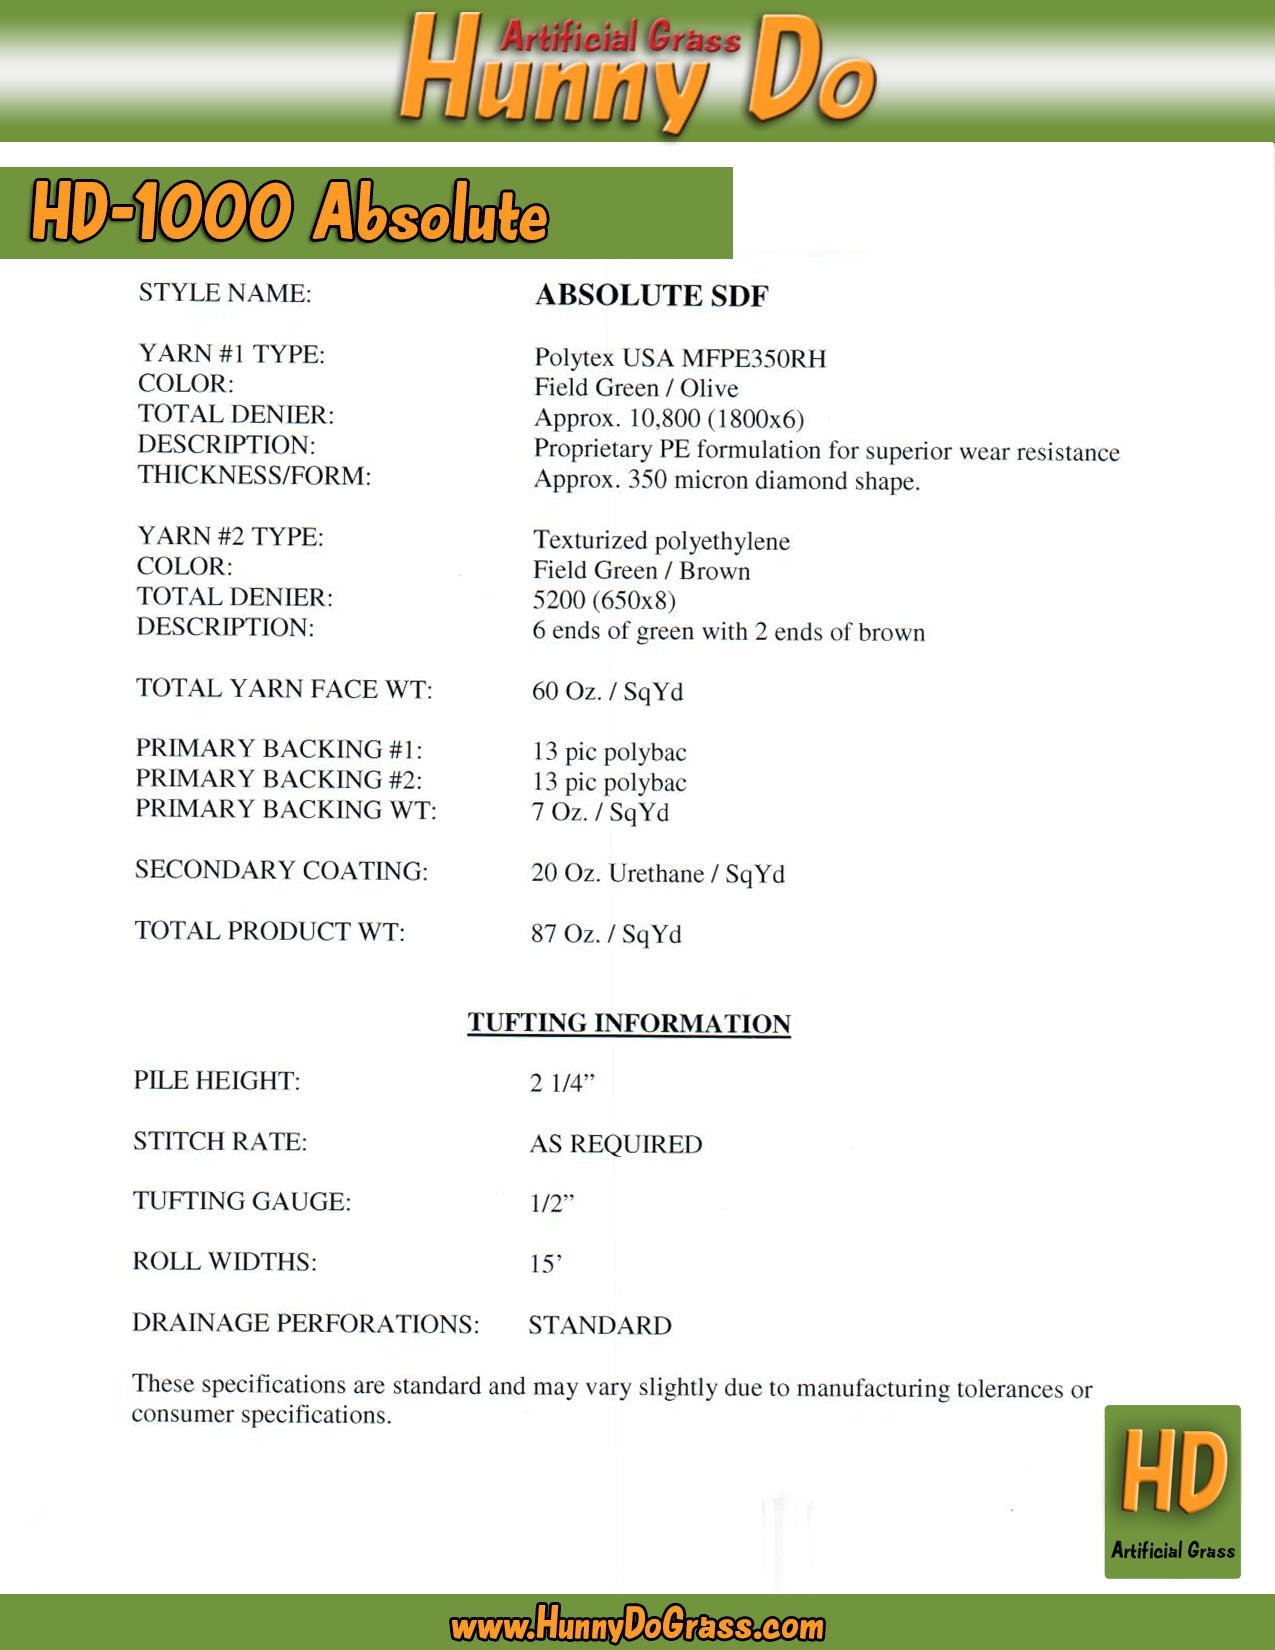 Hunny Do 1000 Absolute Specifications